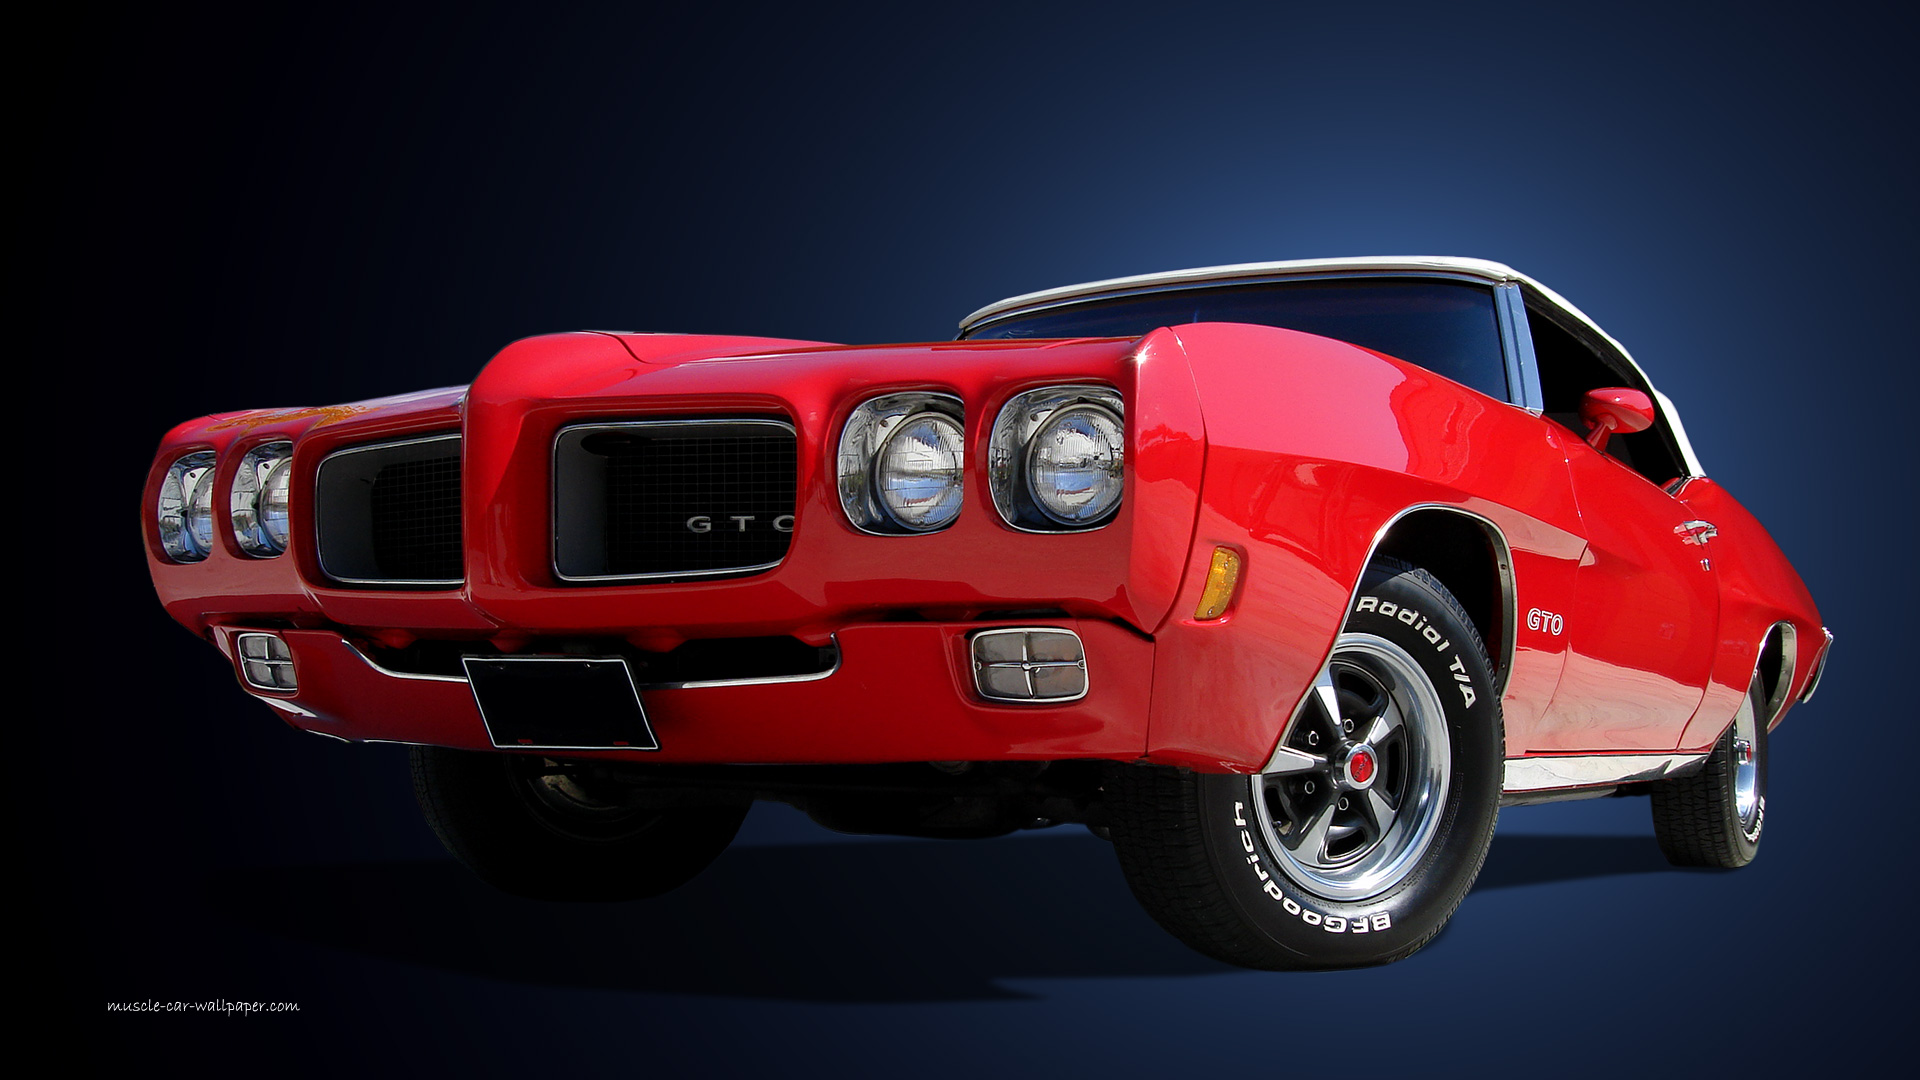 1970 Gto Wallpaper Related Keywords Suggestions   1970 Gto Wallpaper 1920x1080